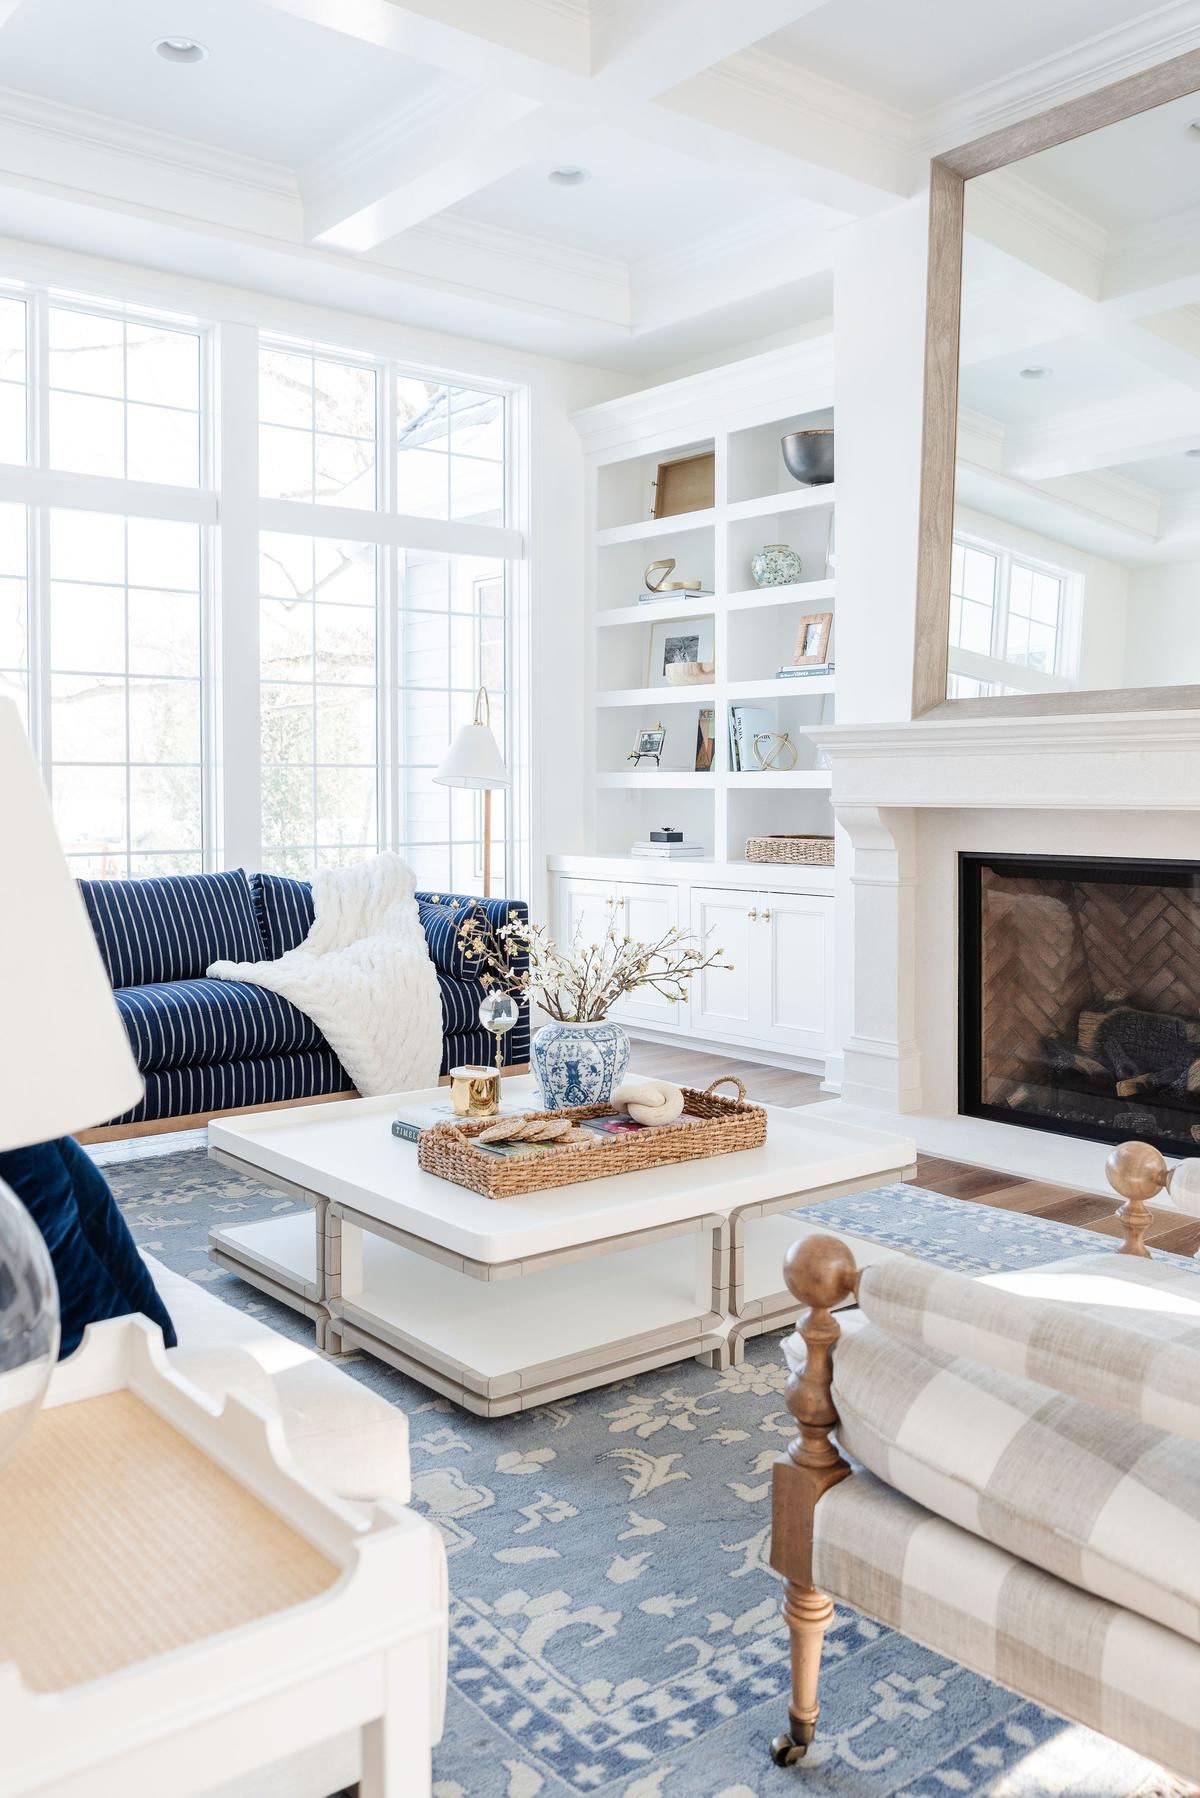 This Nebraska designer's first project was a showhouse